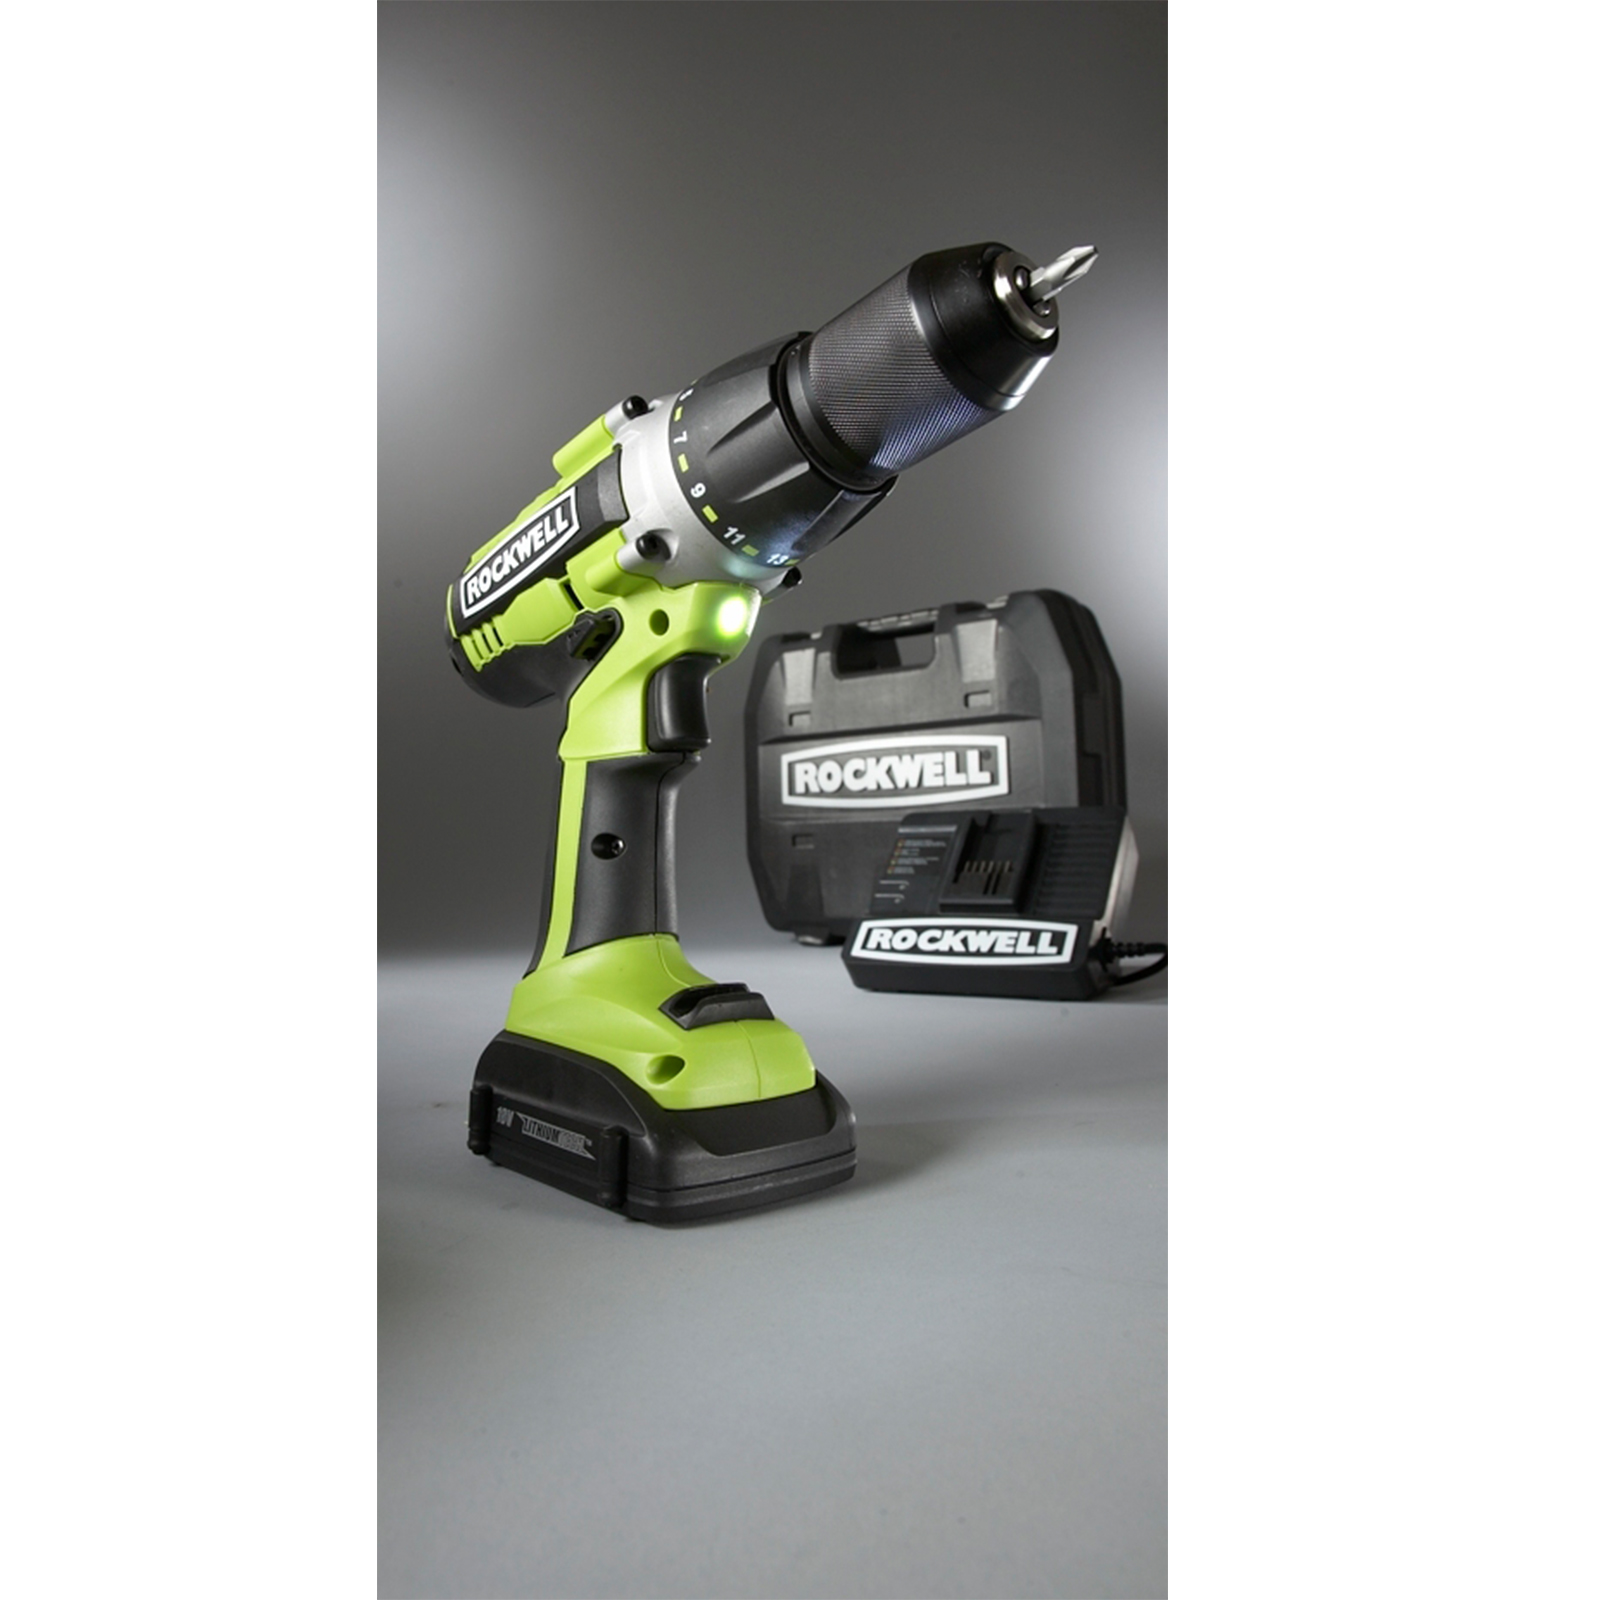 Rockwell 18V ½ in. Lithium Tech™ Drill Driver